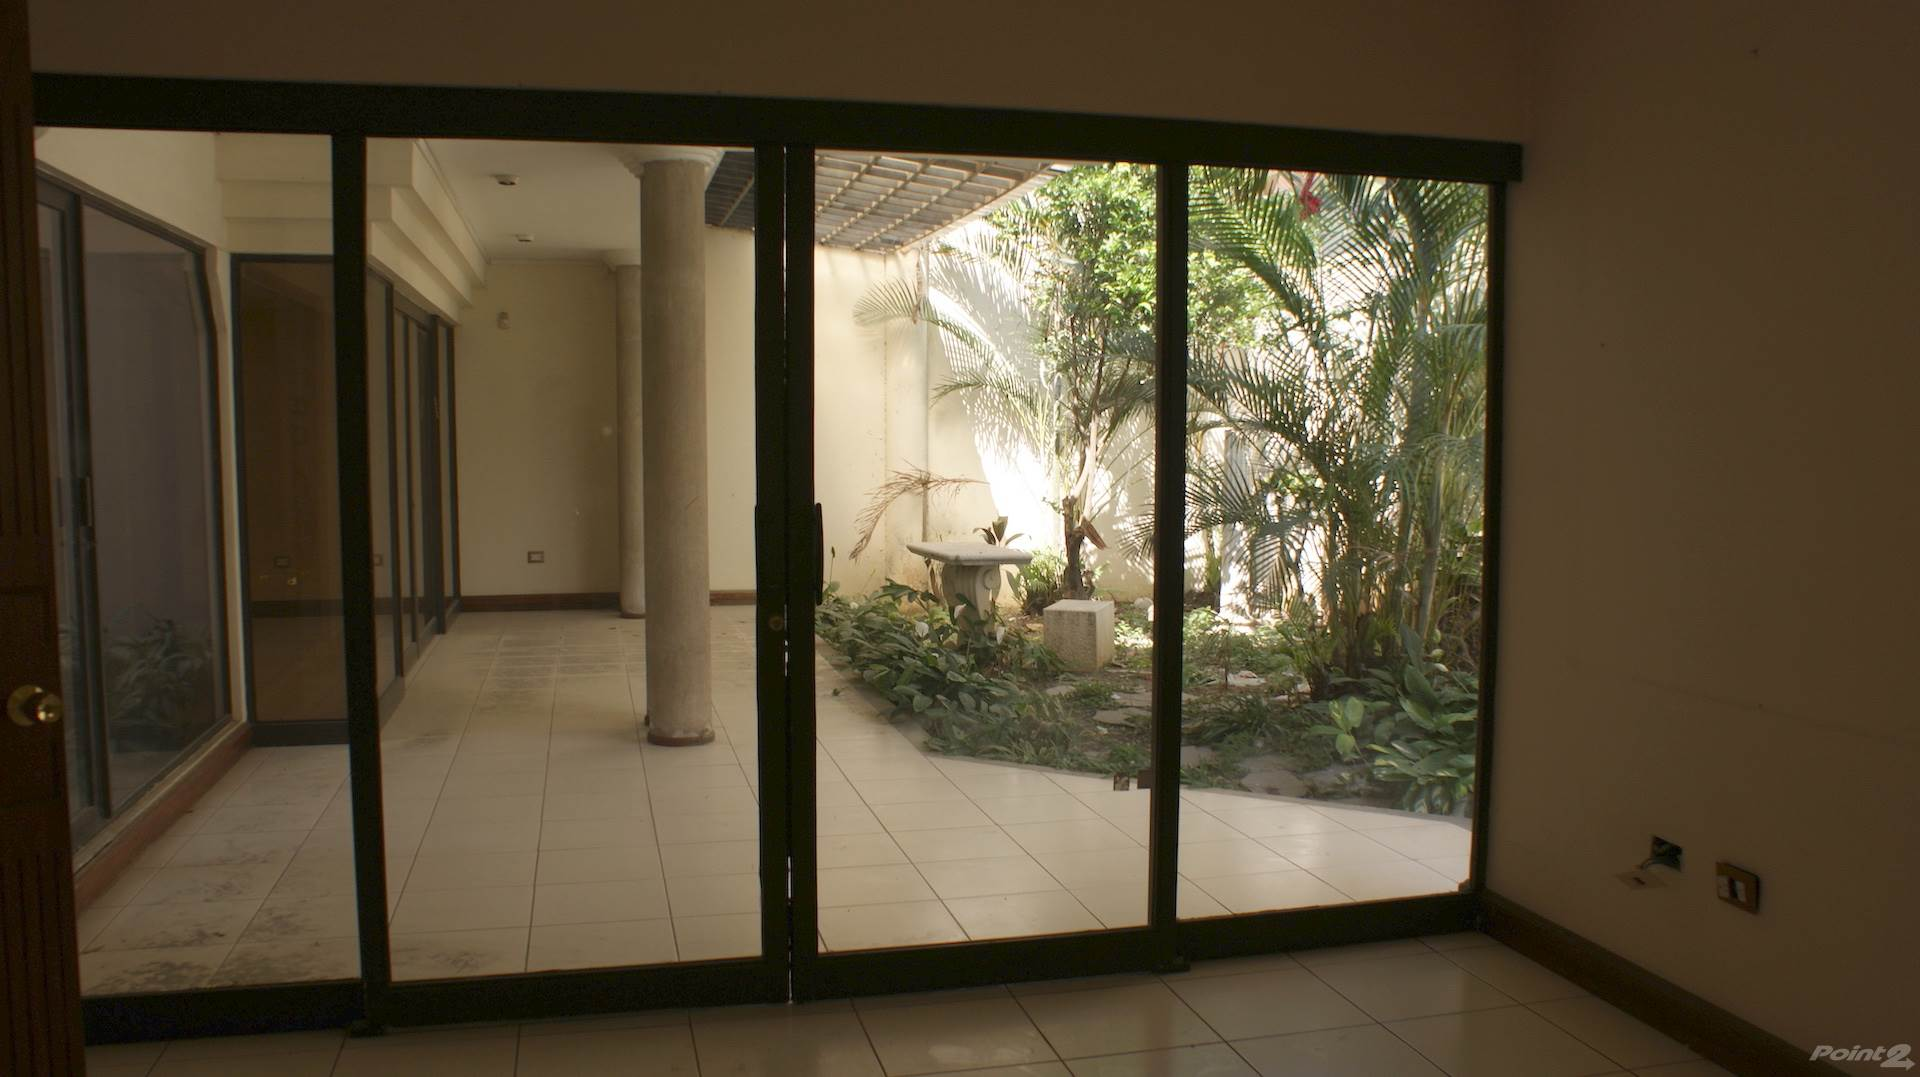 Affitto commerciale in Five brm. home for commercial/office purposes, Rohrmoser San Jose, San José   , Costa Rica